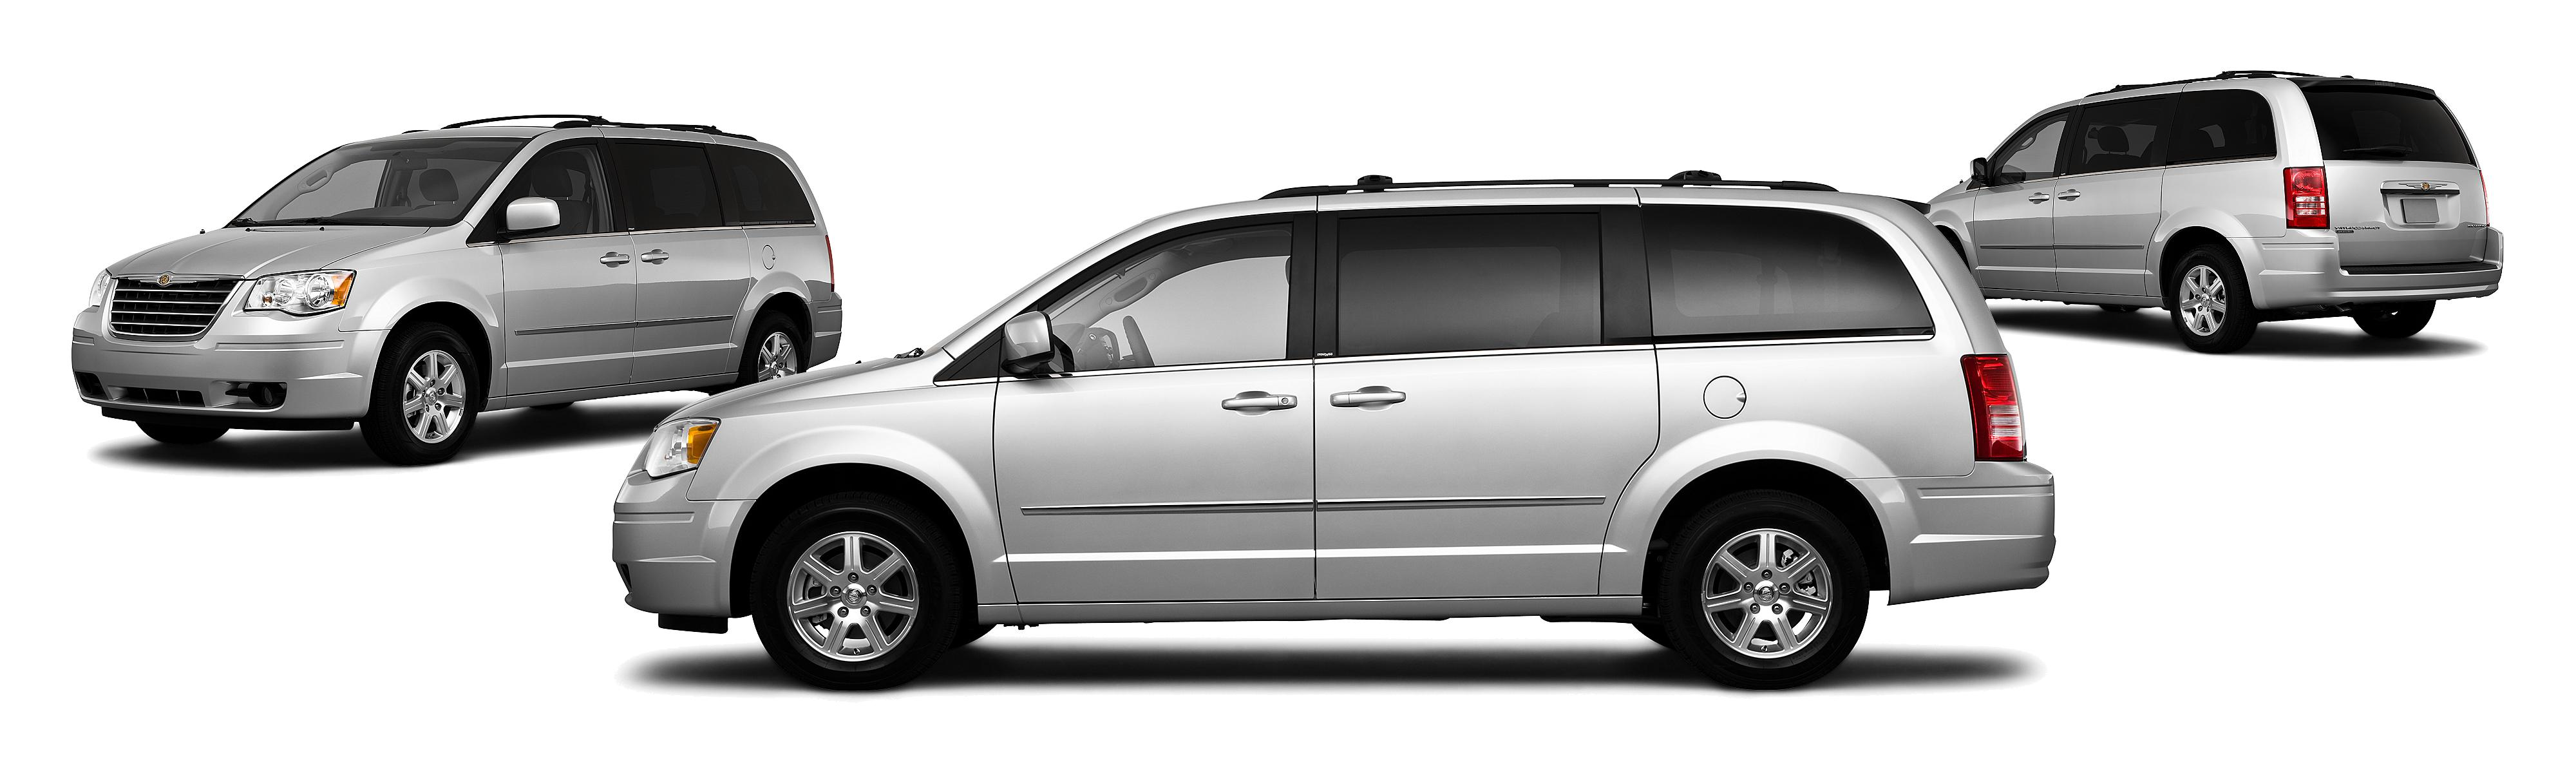 in touring van l chrysler pacifica fwd brunswick east inventory new passenger